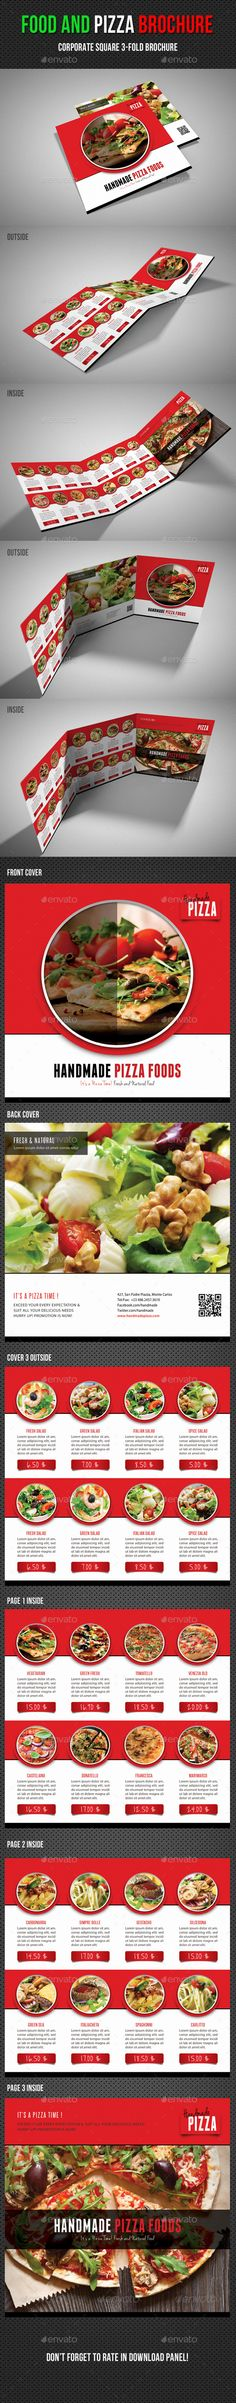 Hamburger Restaurant Menu Flyer Flyers, Small cafe and Advertise - sample pizza menu template